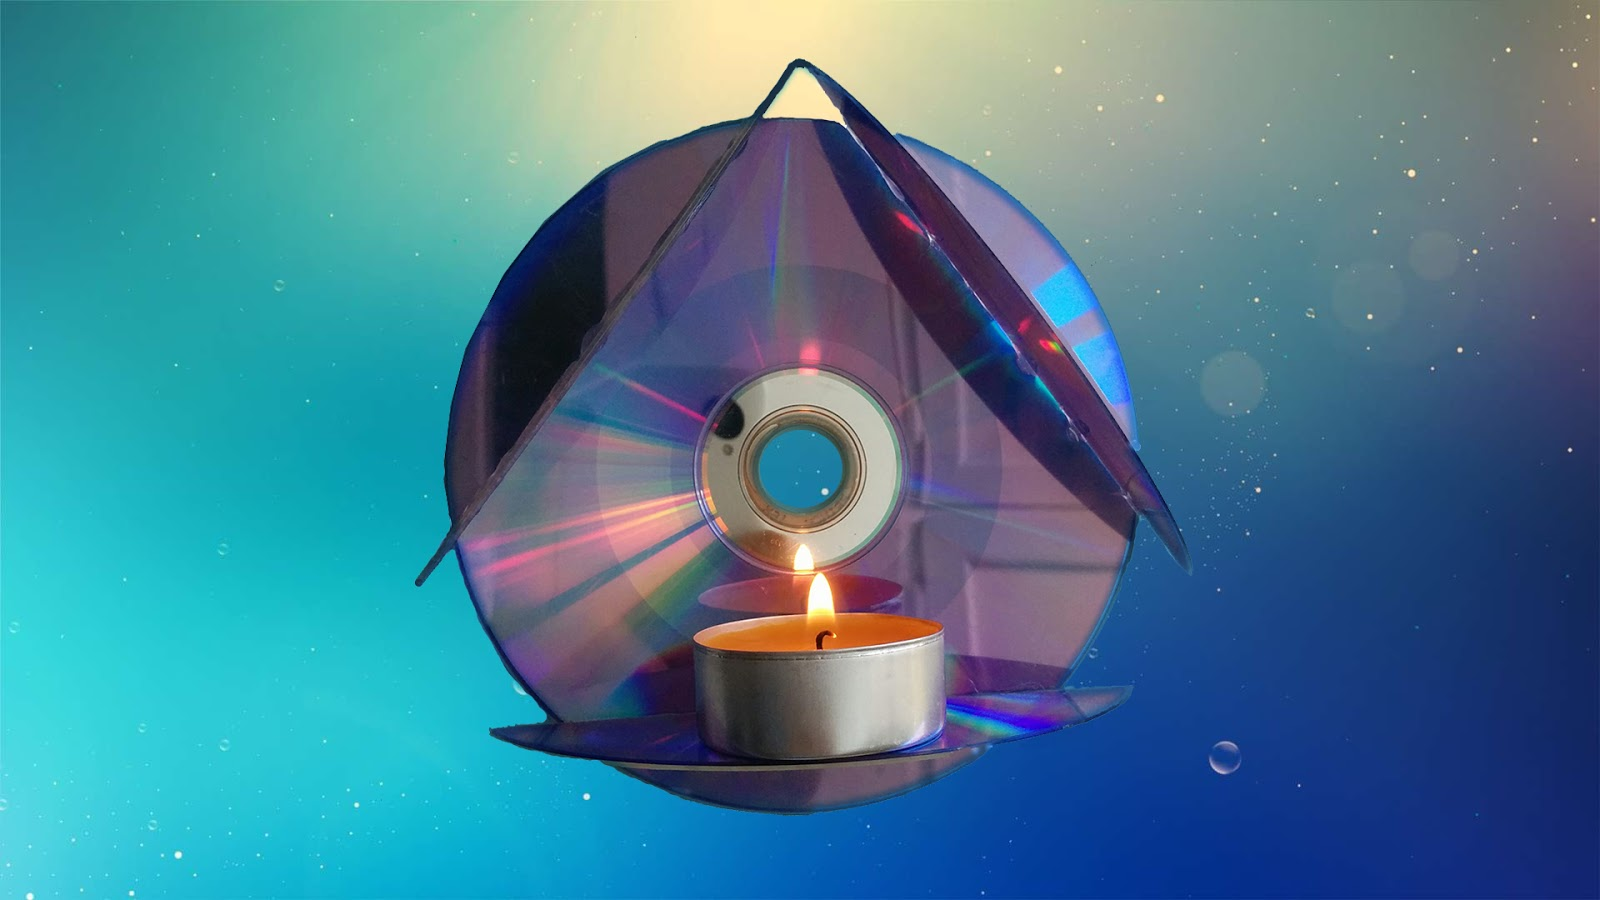 How To Make Wall Hanging Lamp With Old CDsEasy Recycled Cd Craft For Childern And AdultsYou Made It From Cds